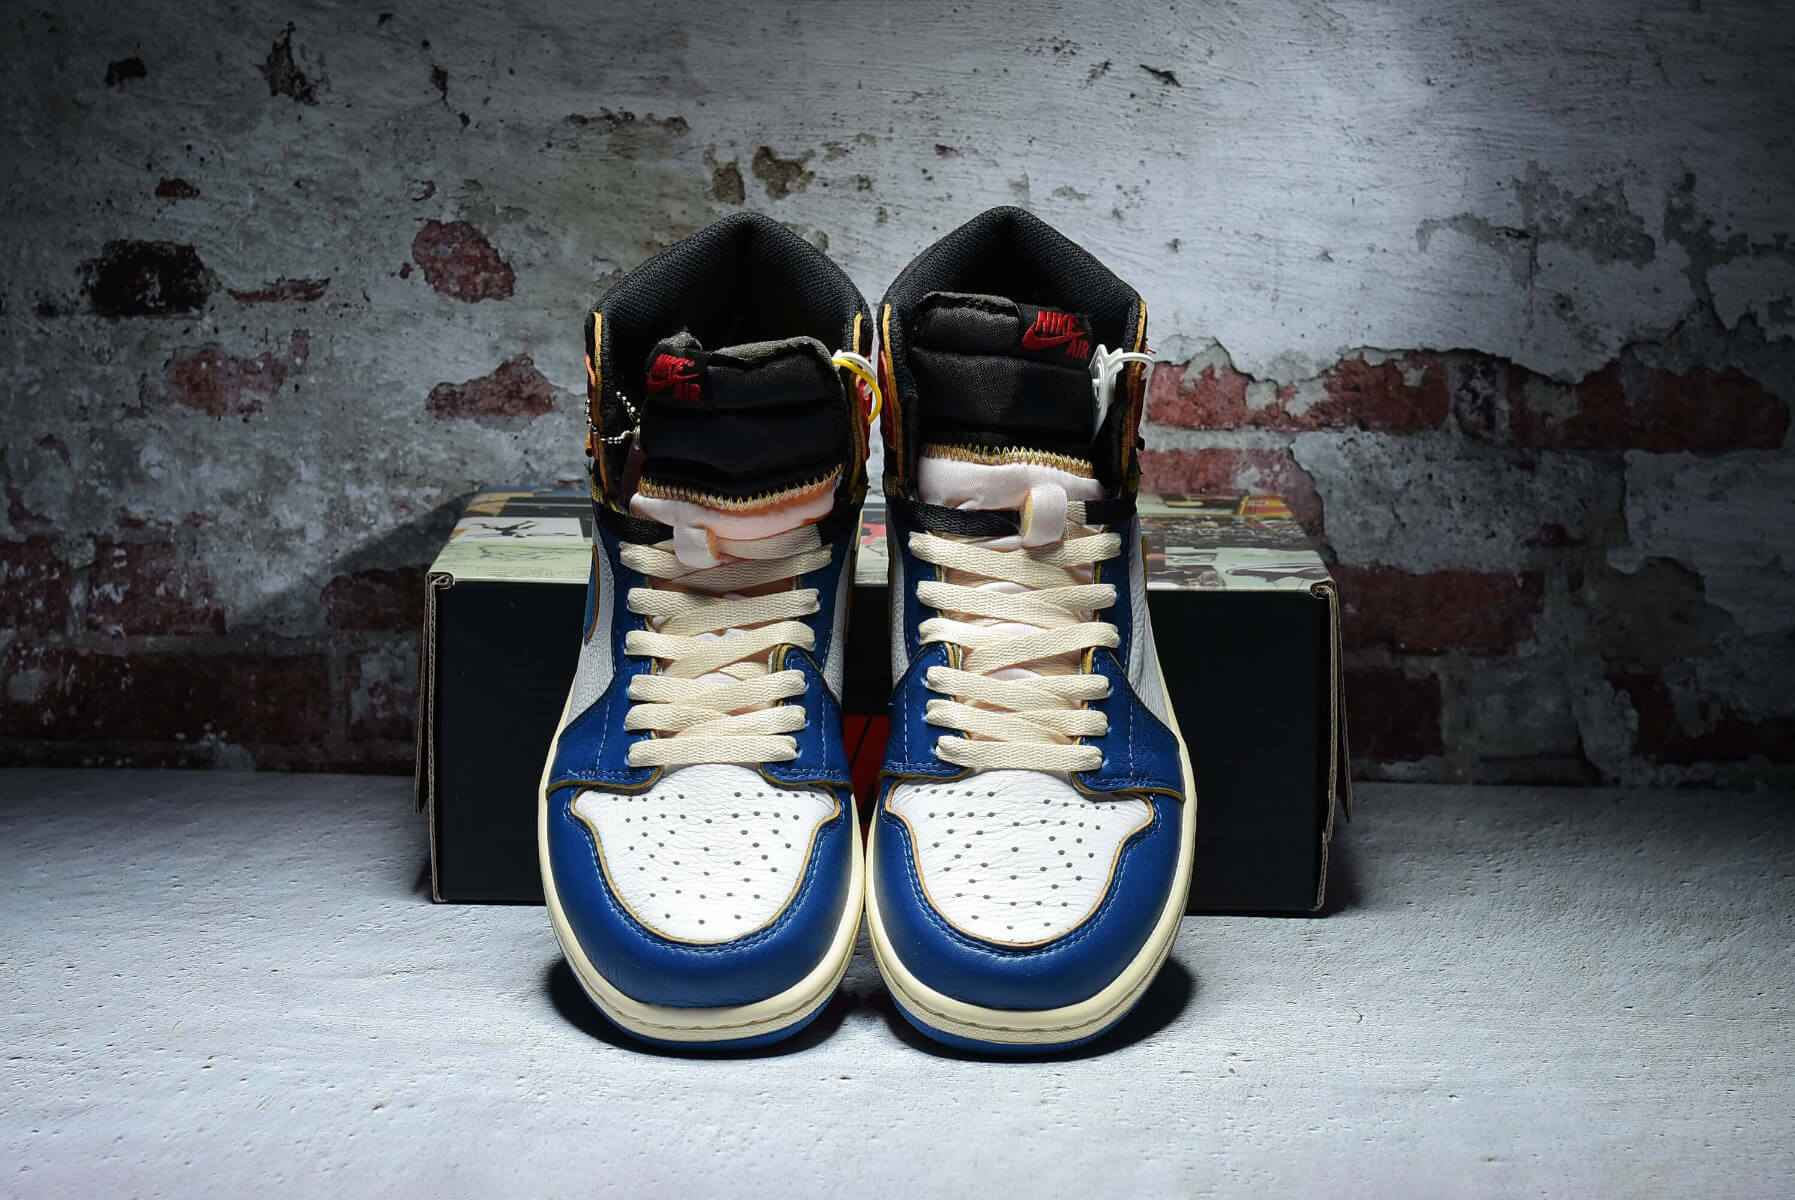 Union x Air Jordan 1 Retro High OG NRG Stom Blue BV1300-146